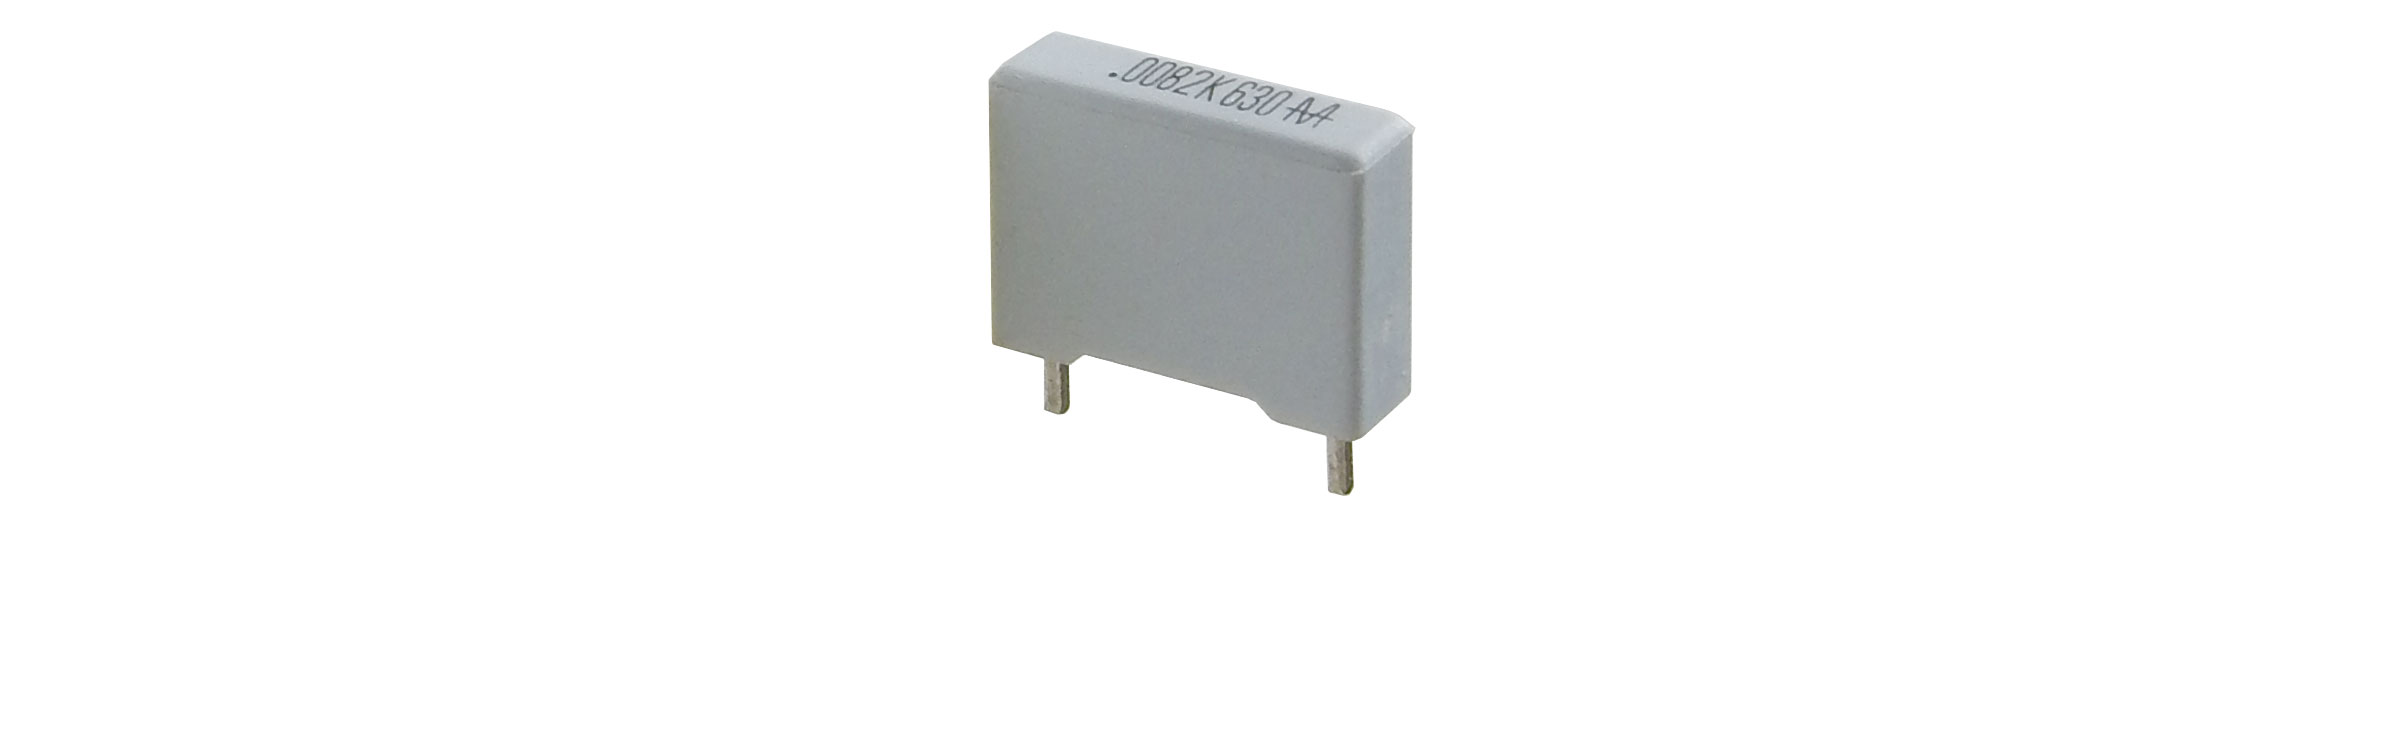 0.0082 UF 630V METAL FILM CAPACITOR